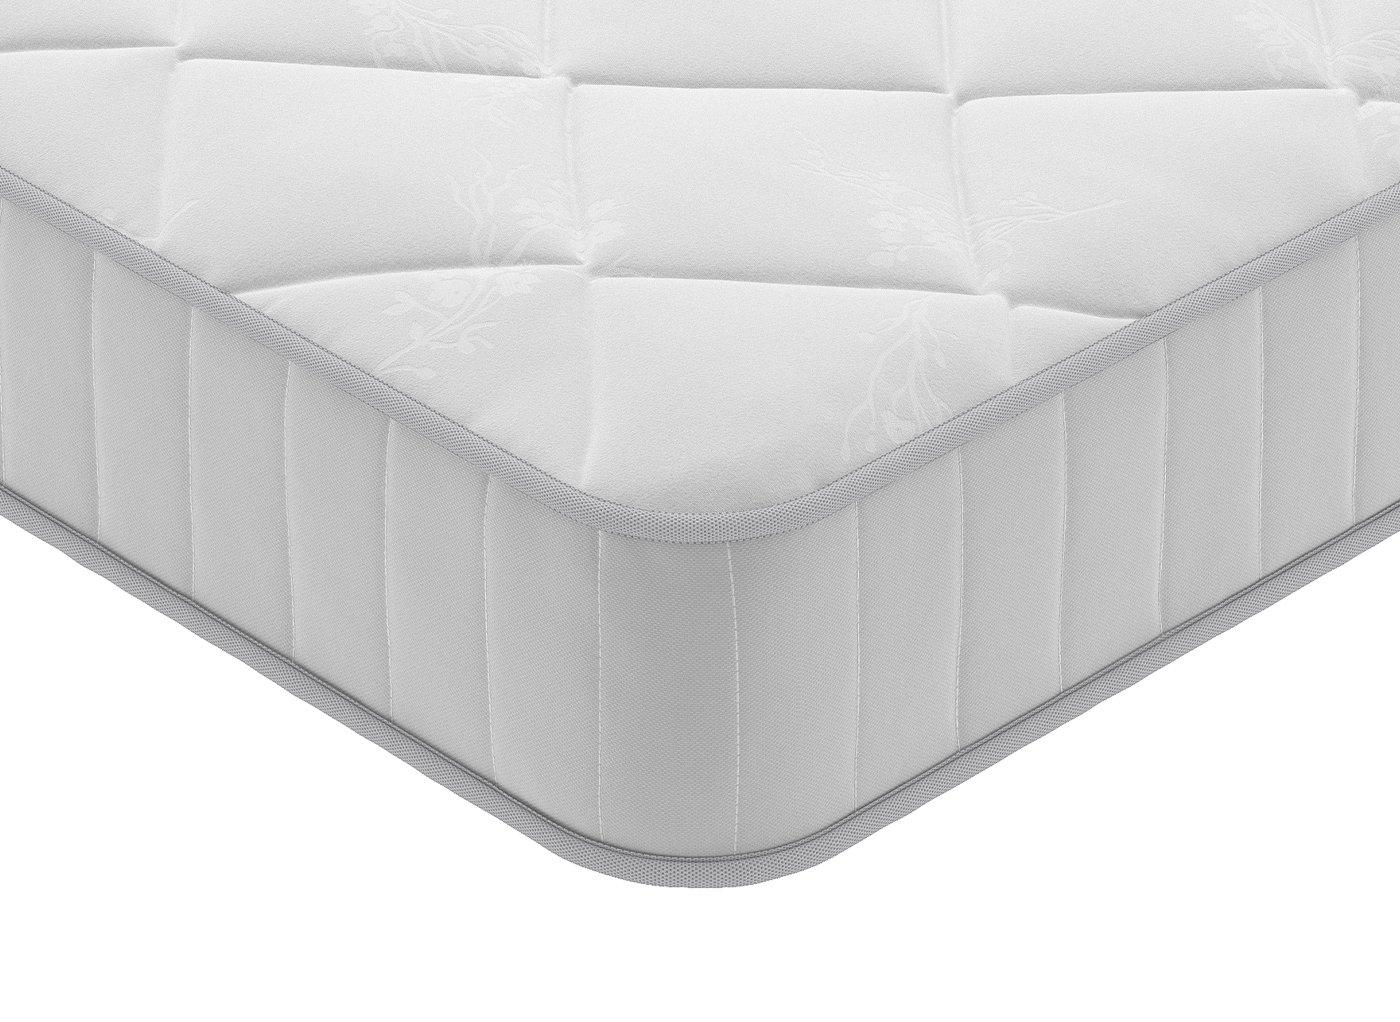 Brooke Traditional Spring Mattress - Medium 4'6 Double